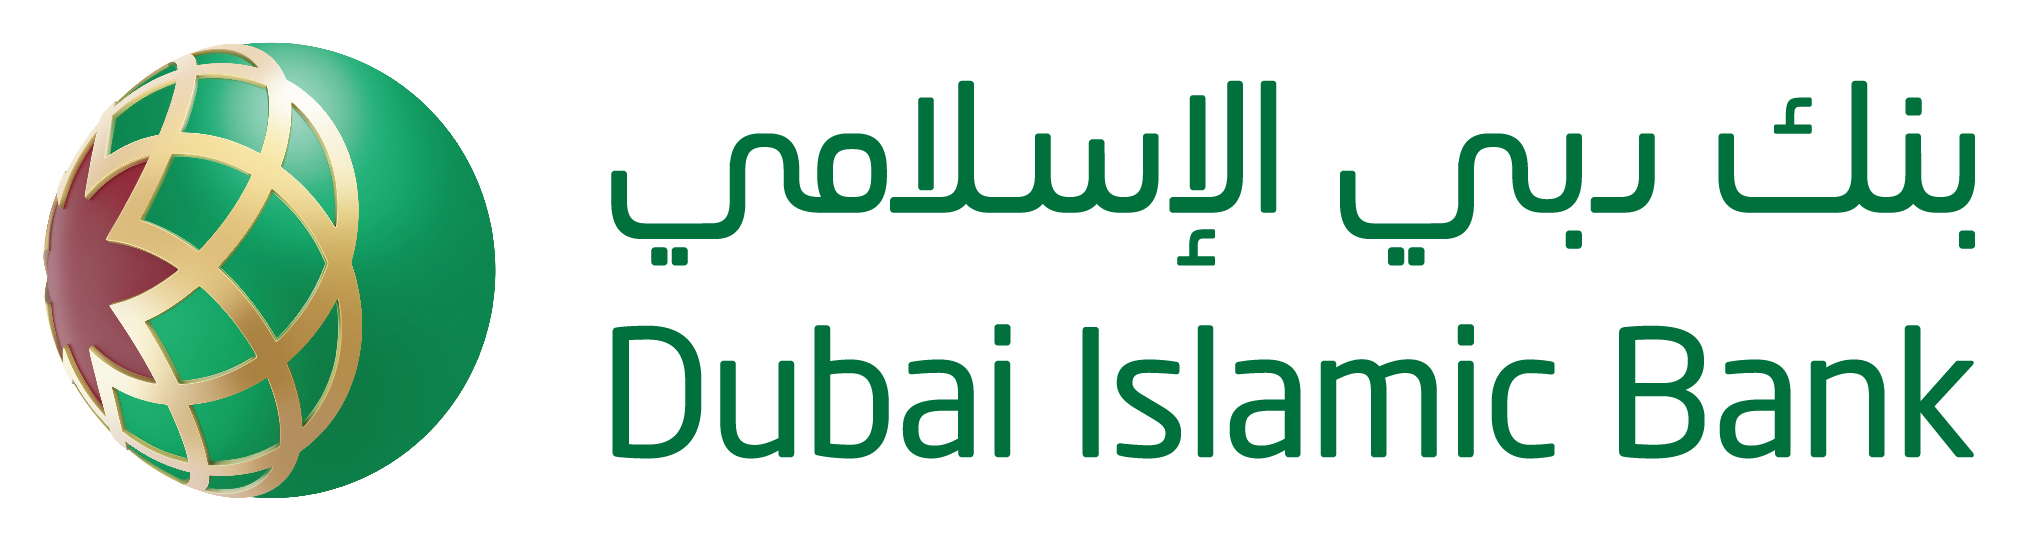 Dubai Islamic Bank - Sukuk Finance Expats